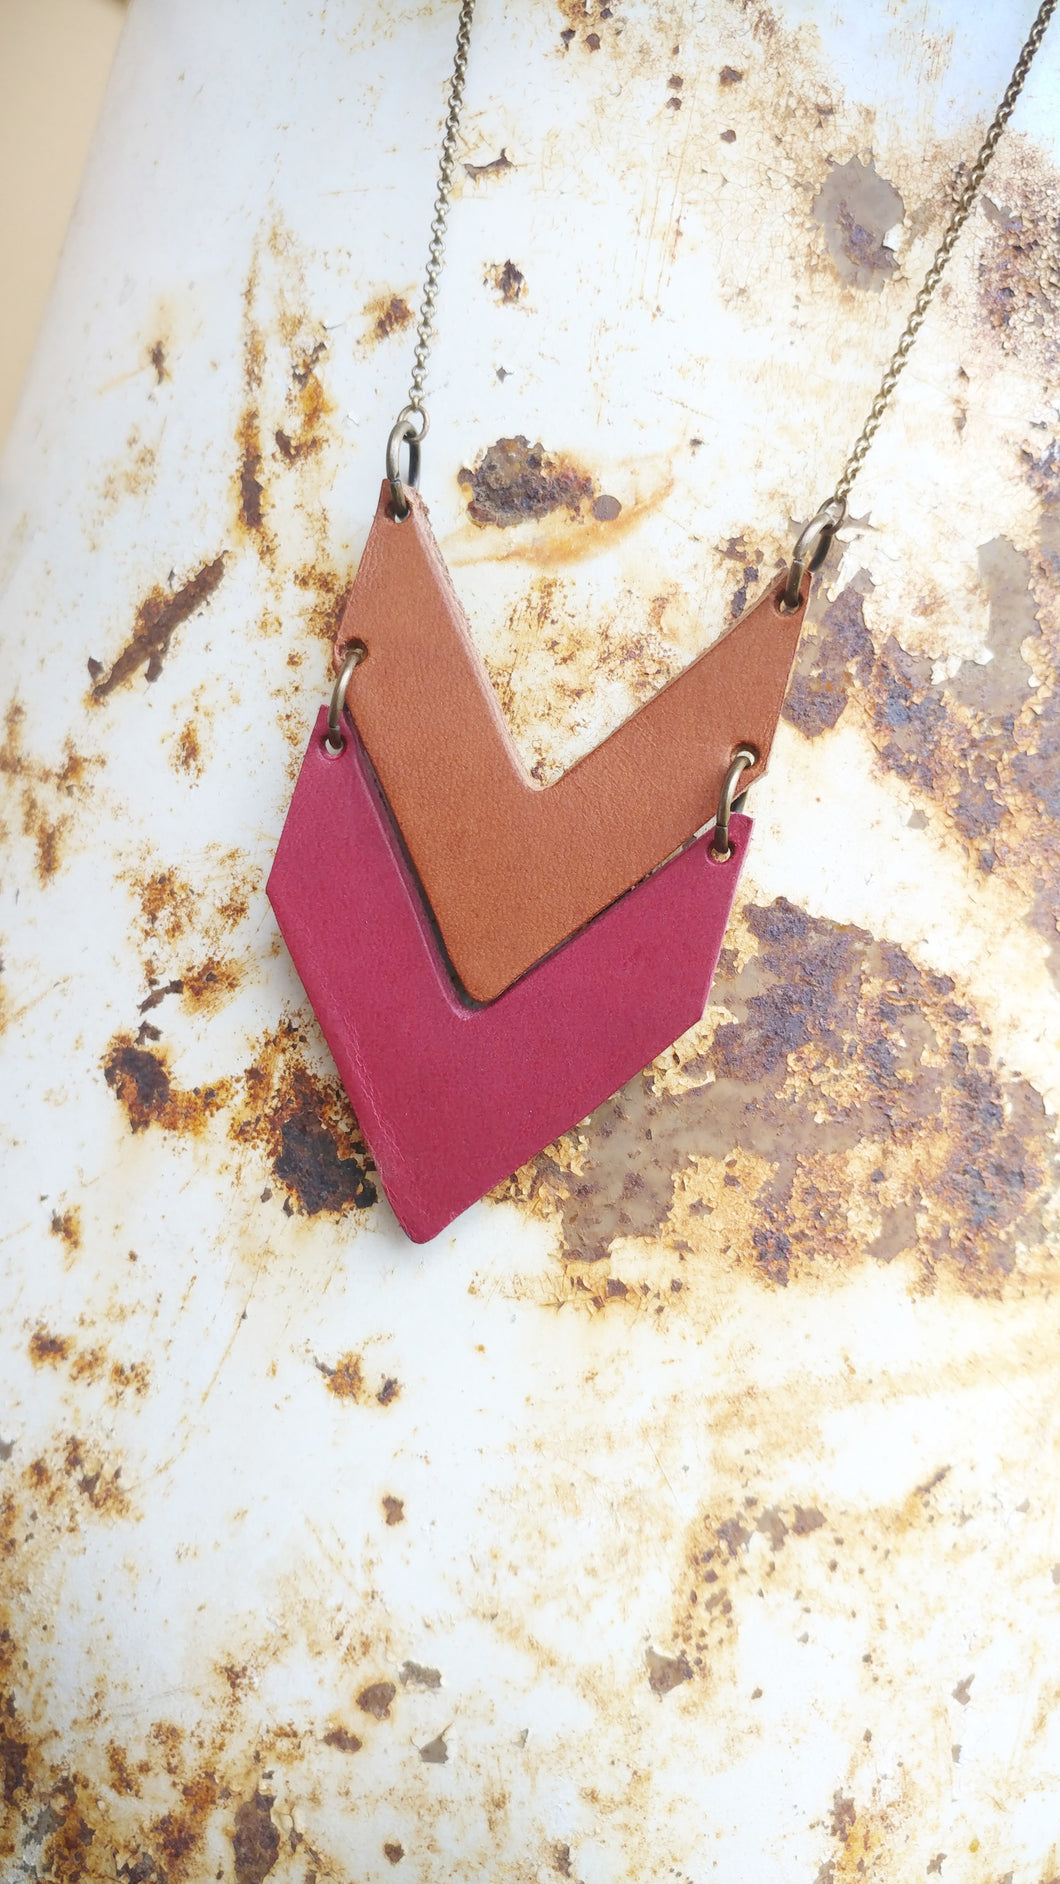 Leather Chevron Pendant Necklace Custom Hand Cut Leathers with Antique Brass Long Chain Double Layer Drop by MyBella